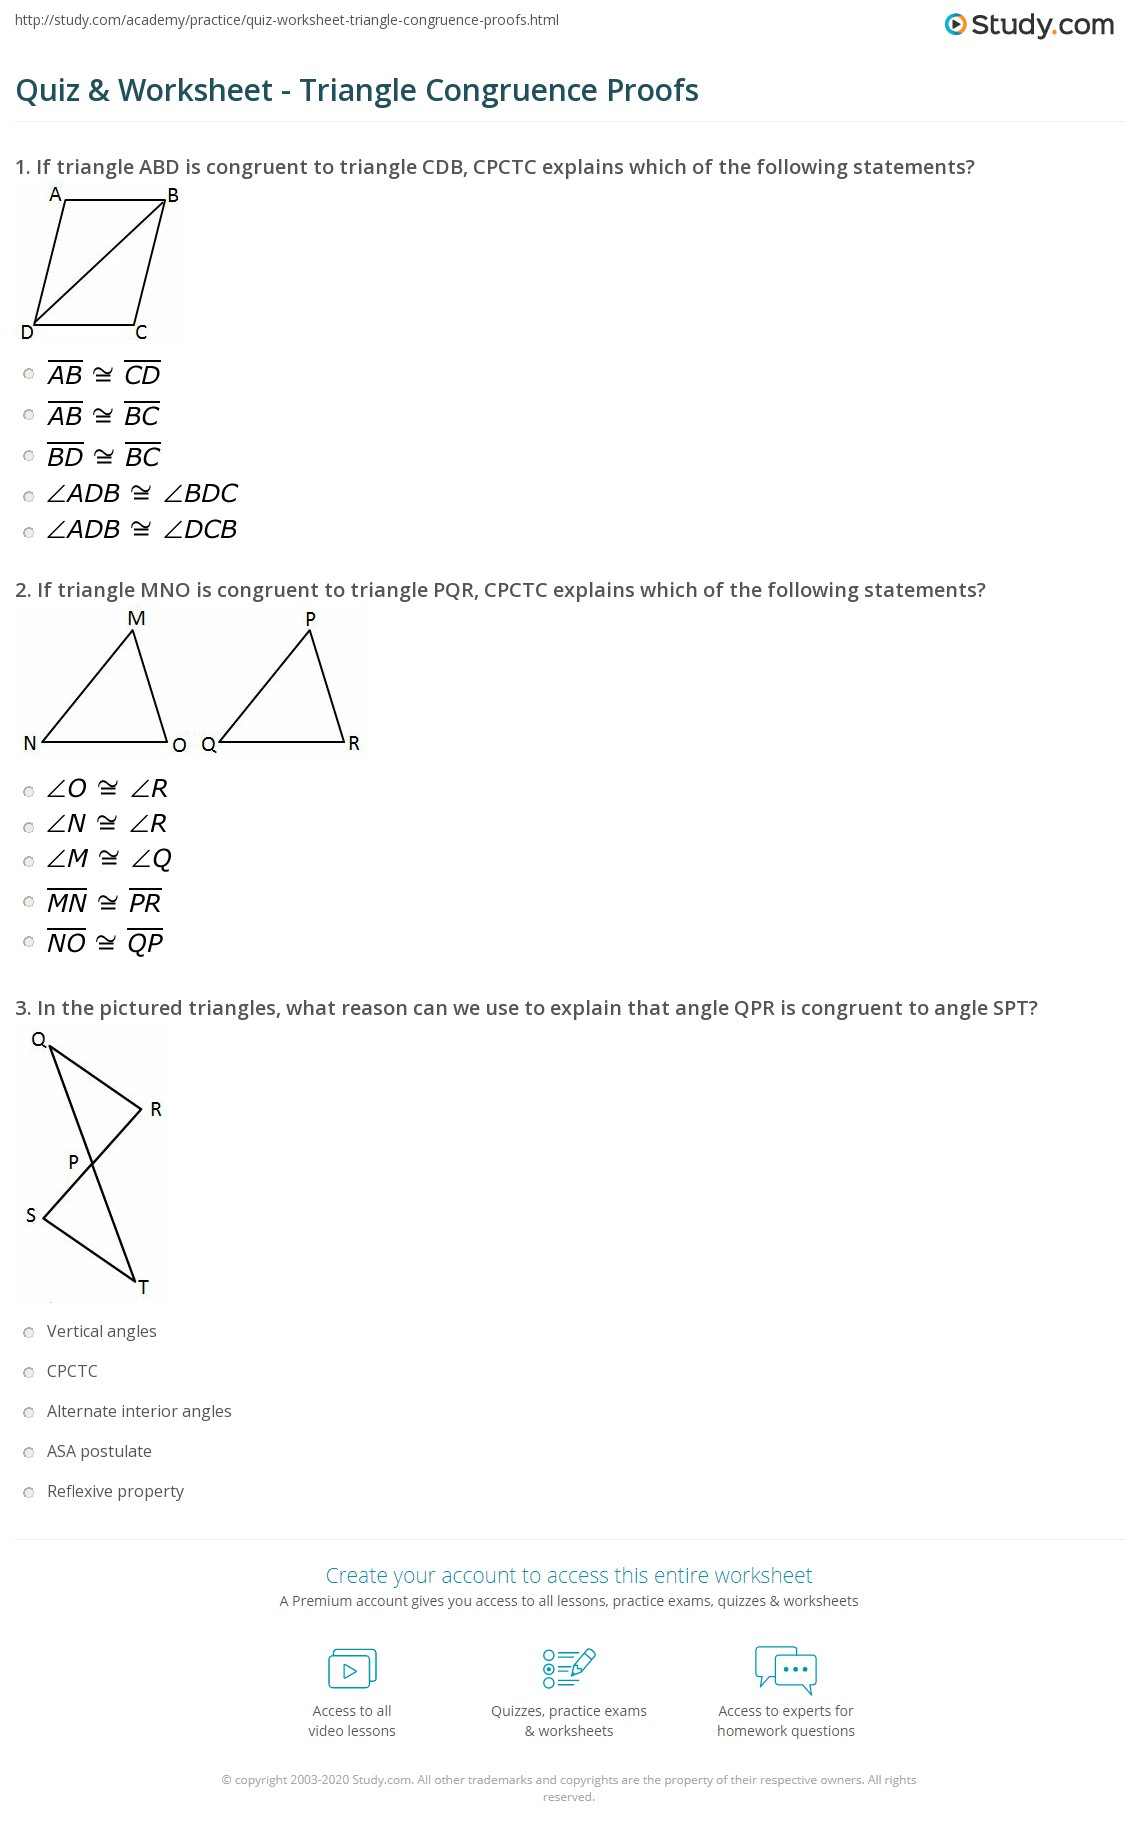 Quiz Worksheet Triangle Congruence Proofs – Triangle Proofs Worksheet